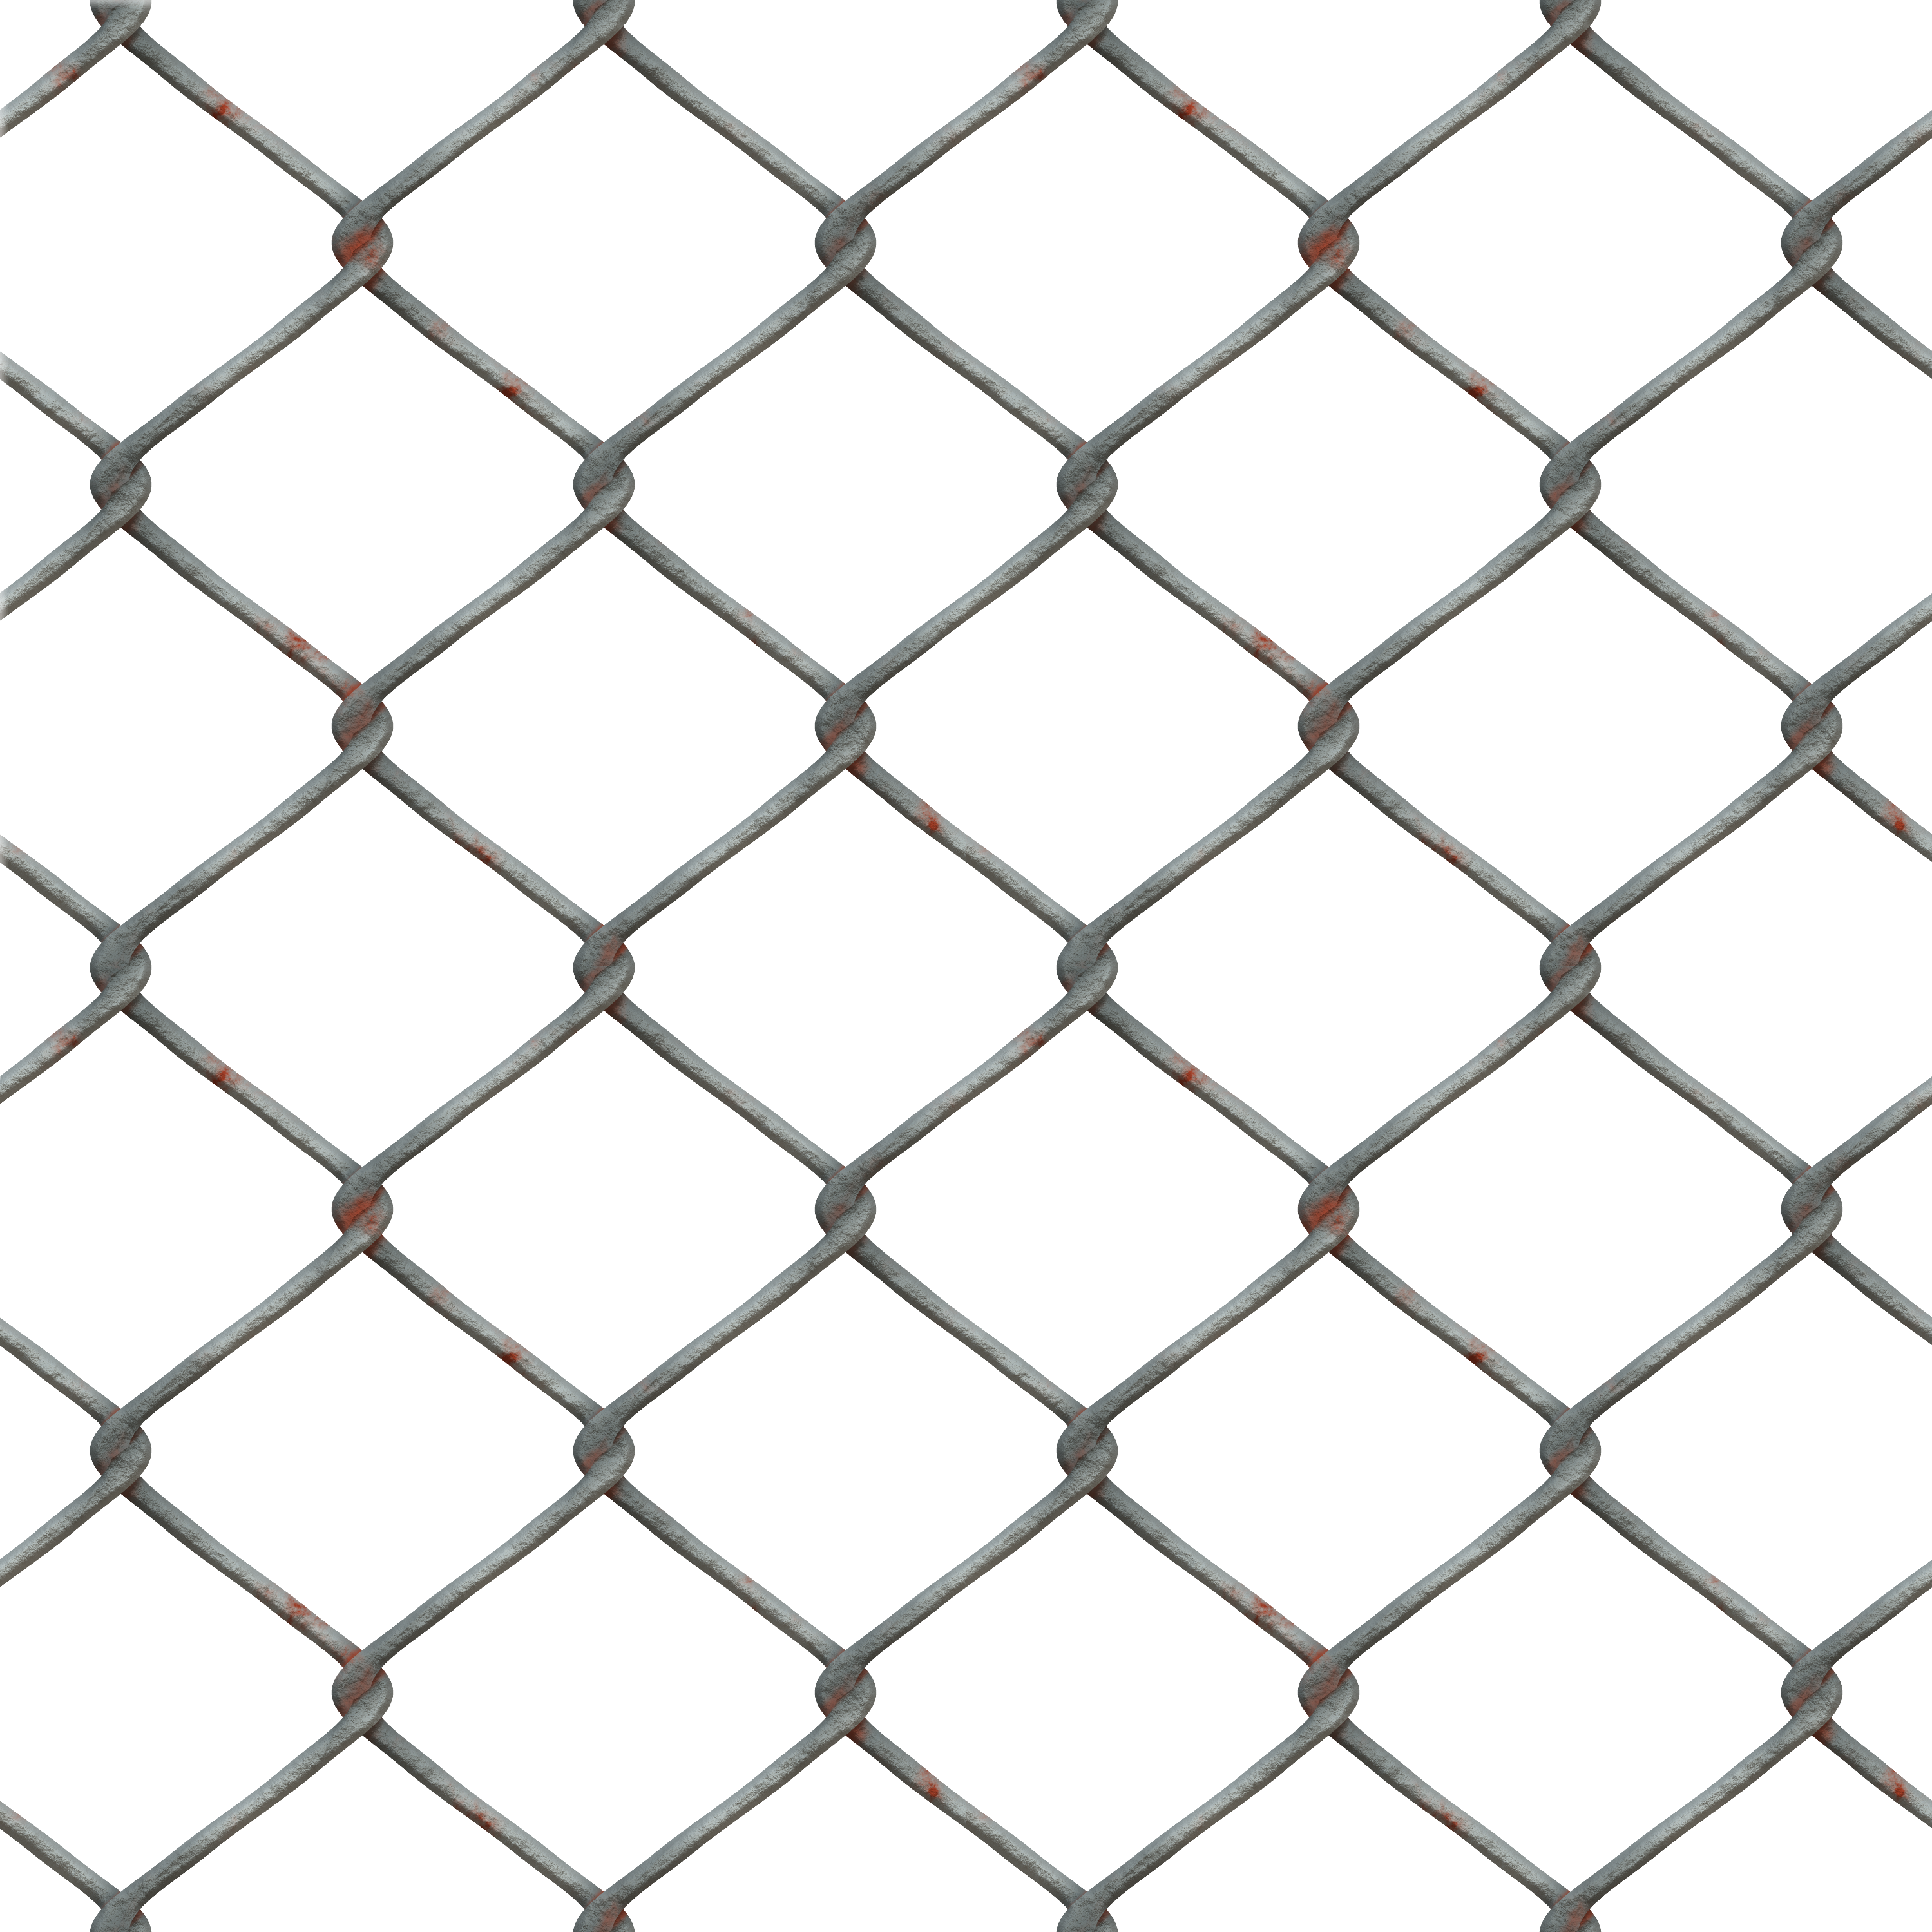 Related Image Chain Fence Chain Link Fence Metal Fence